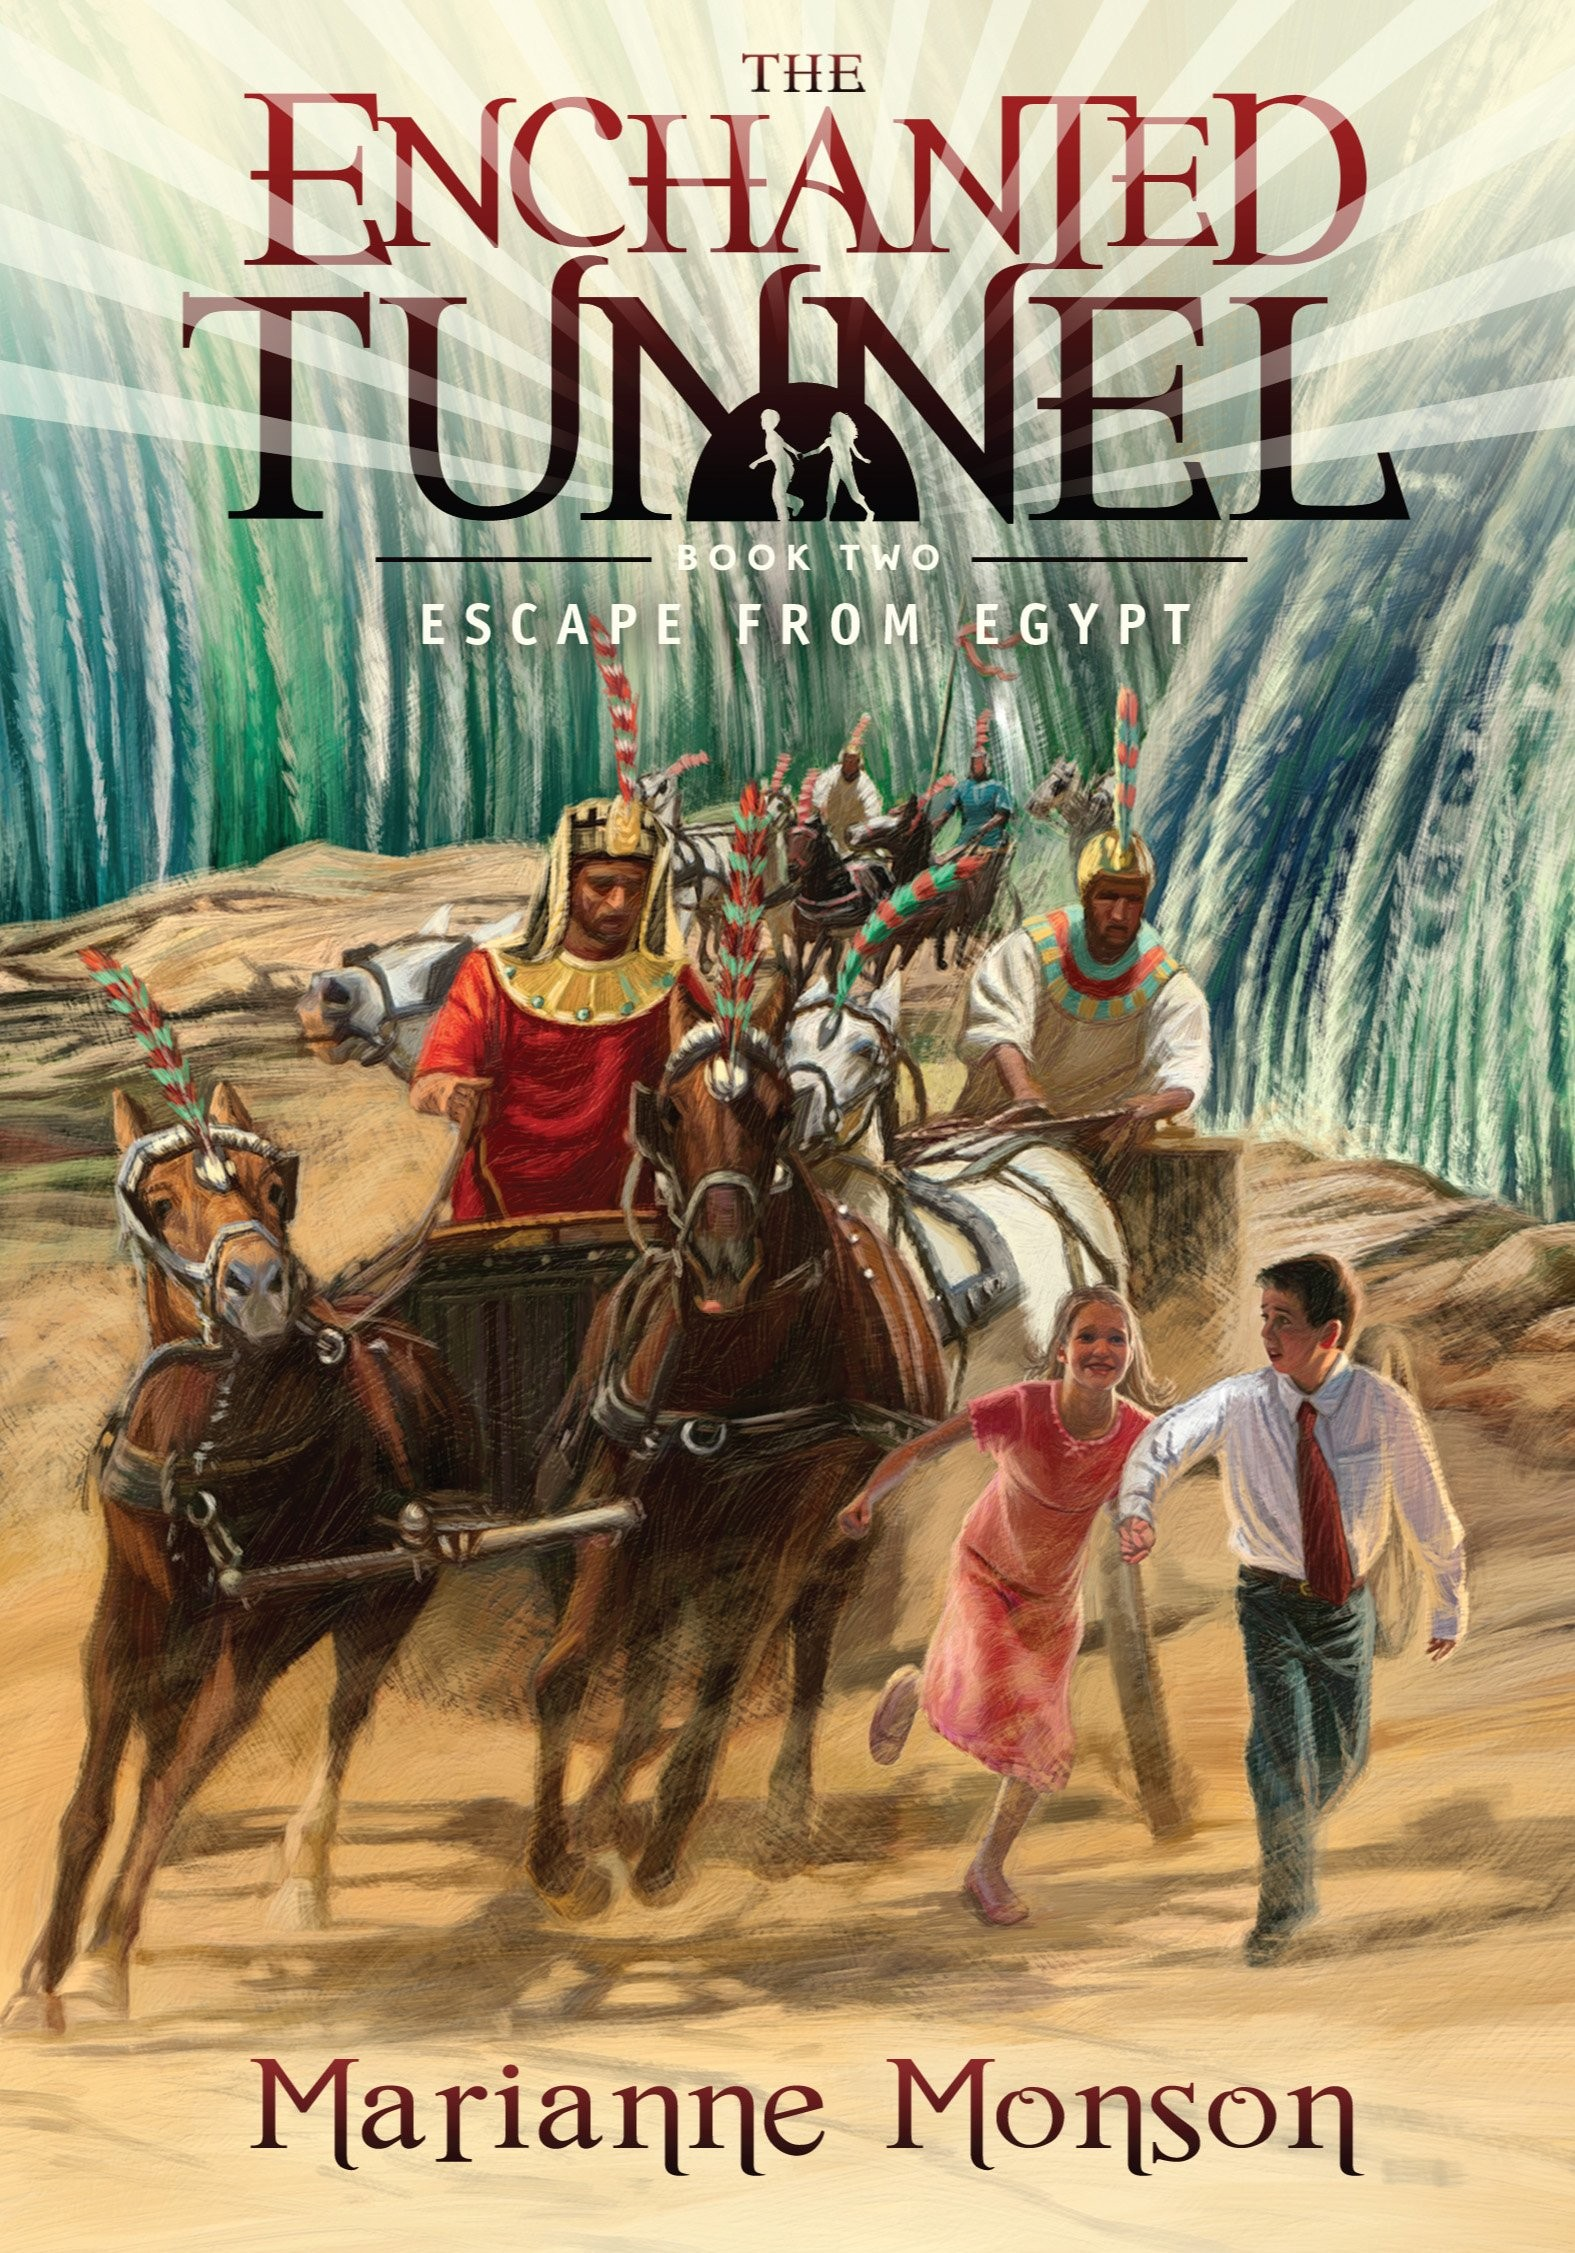 Escape from Egypt (The Enchanted Tunnel #2)